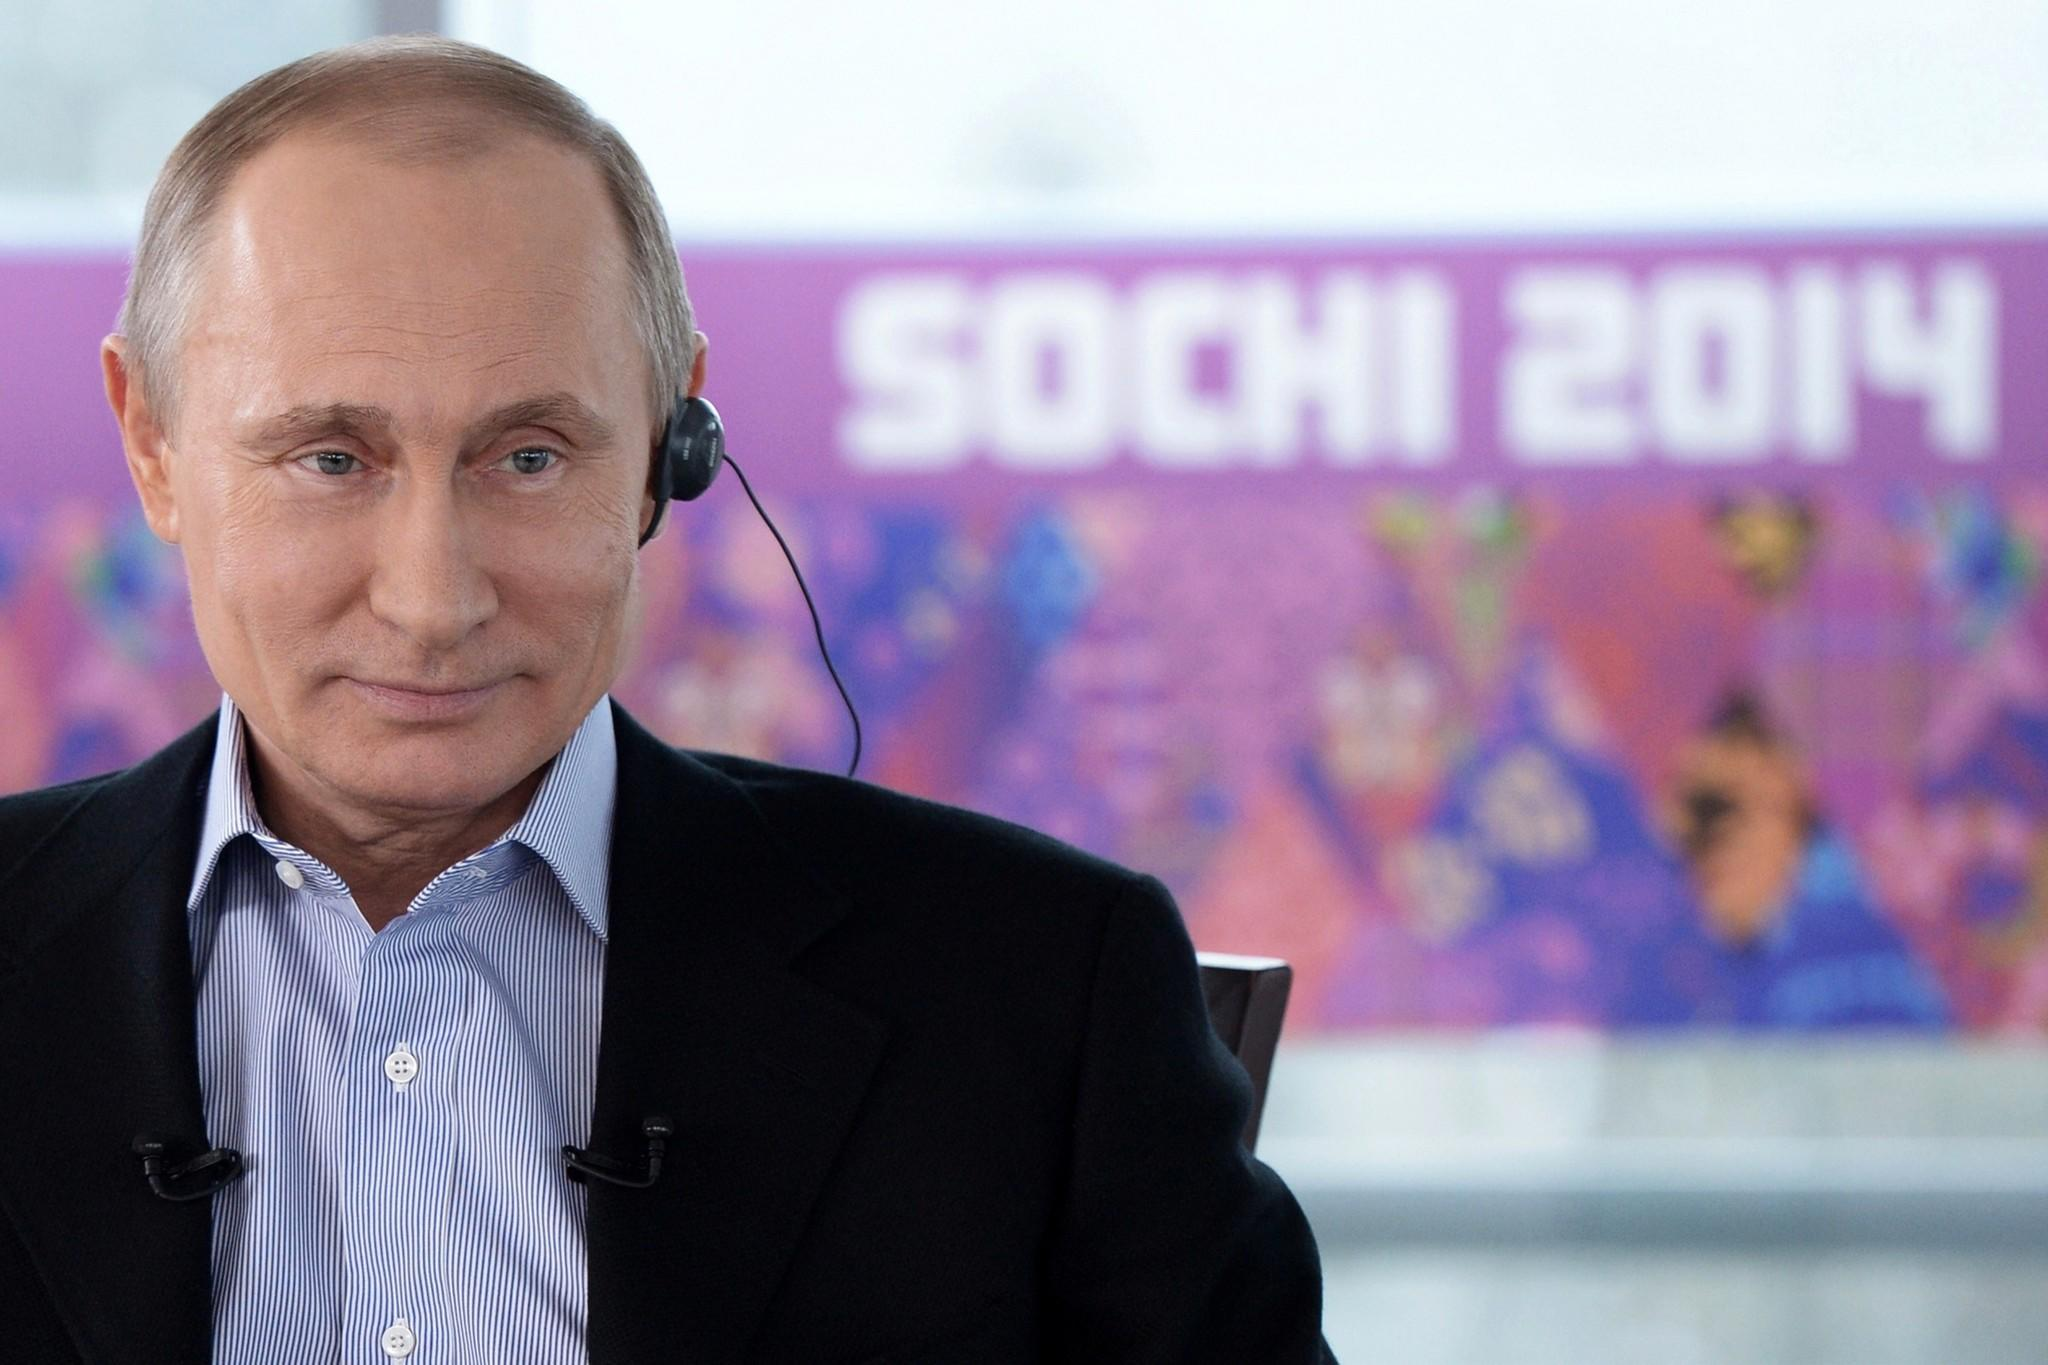 For Russian President Vladimir Putin, the Winter Olympics he brought to Sochi have always been about far more than sports.